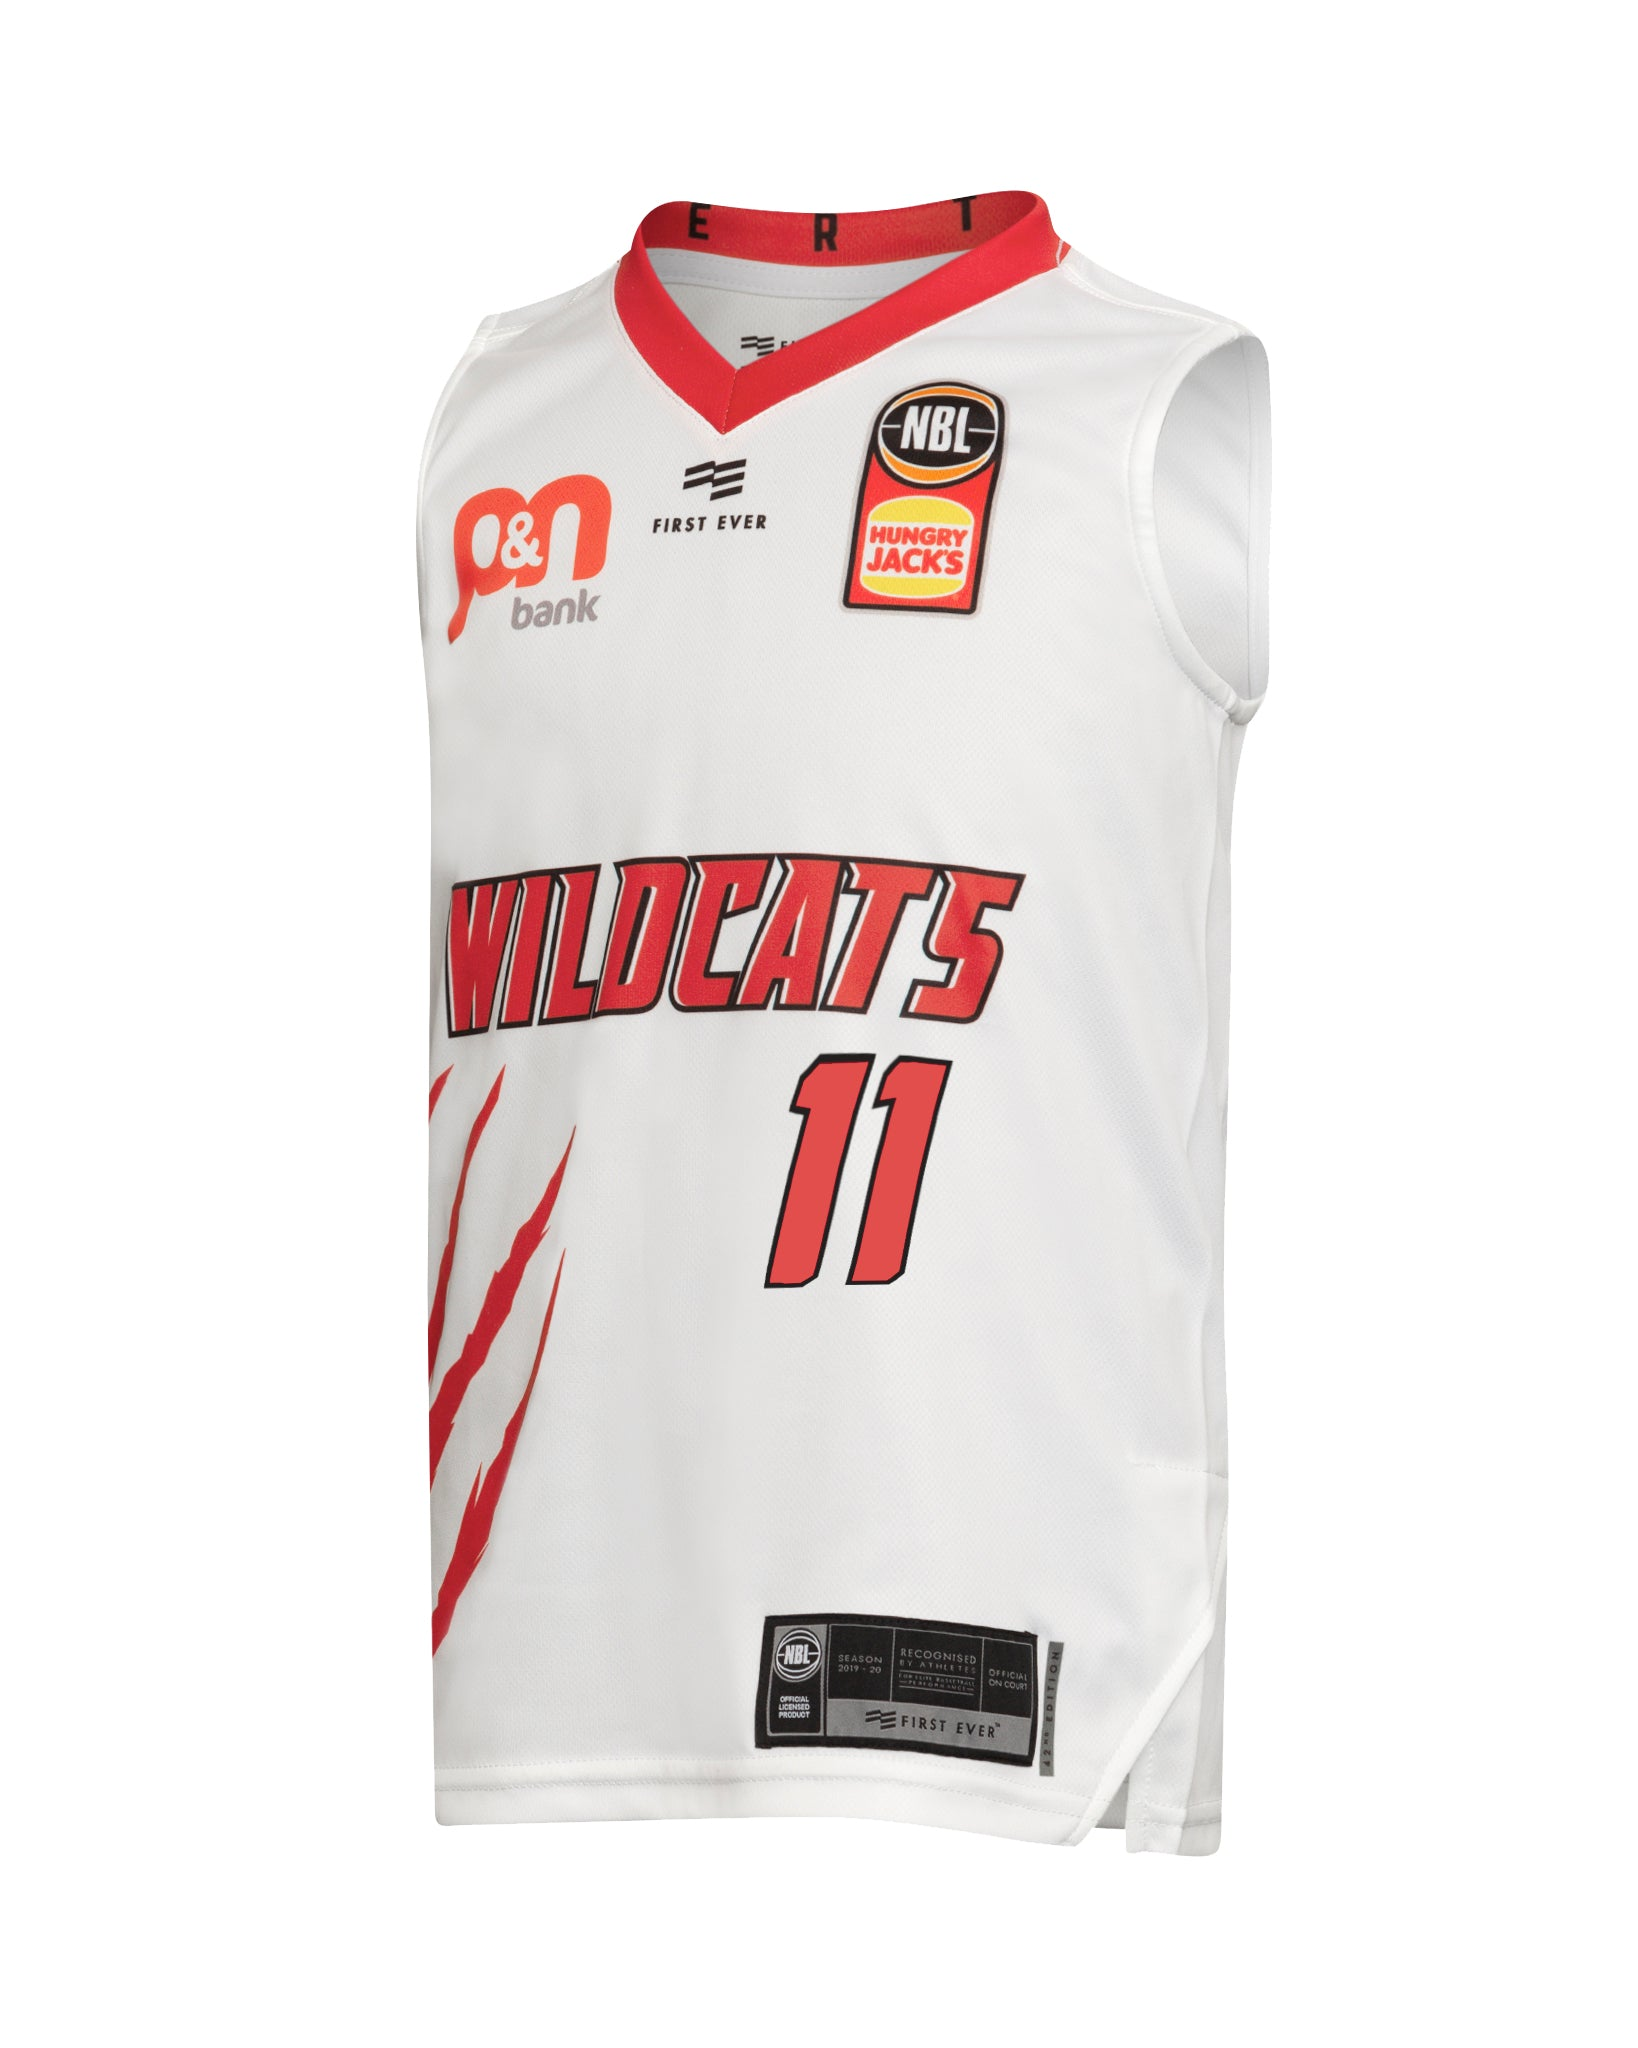 Perth Wildcats 19/20 Youth Authentic Away Jersey - Bryce Cotton